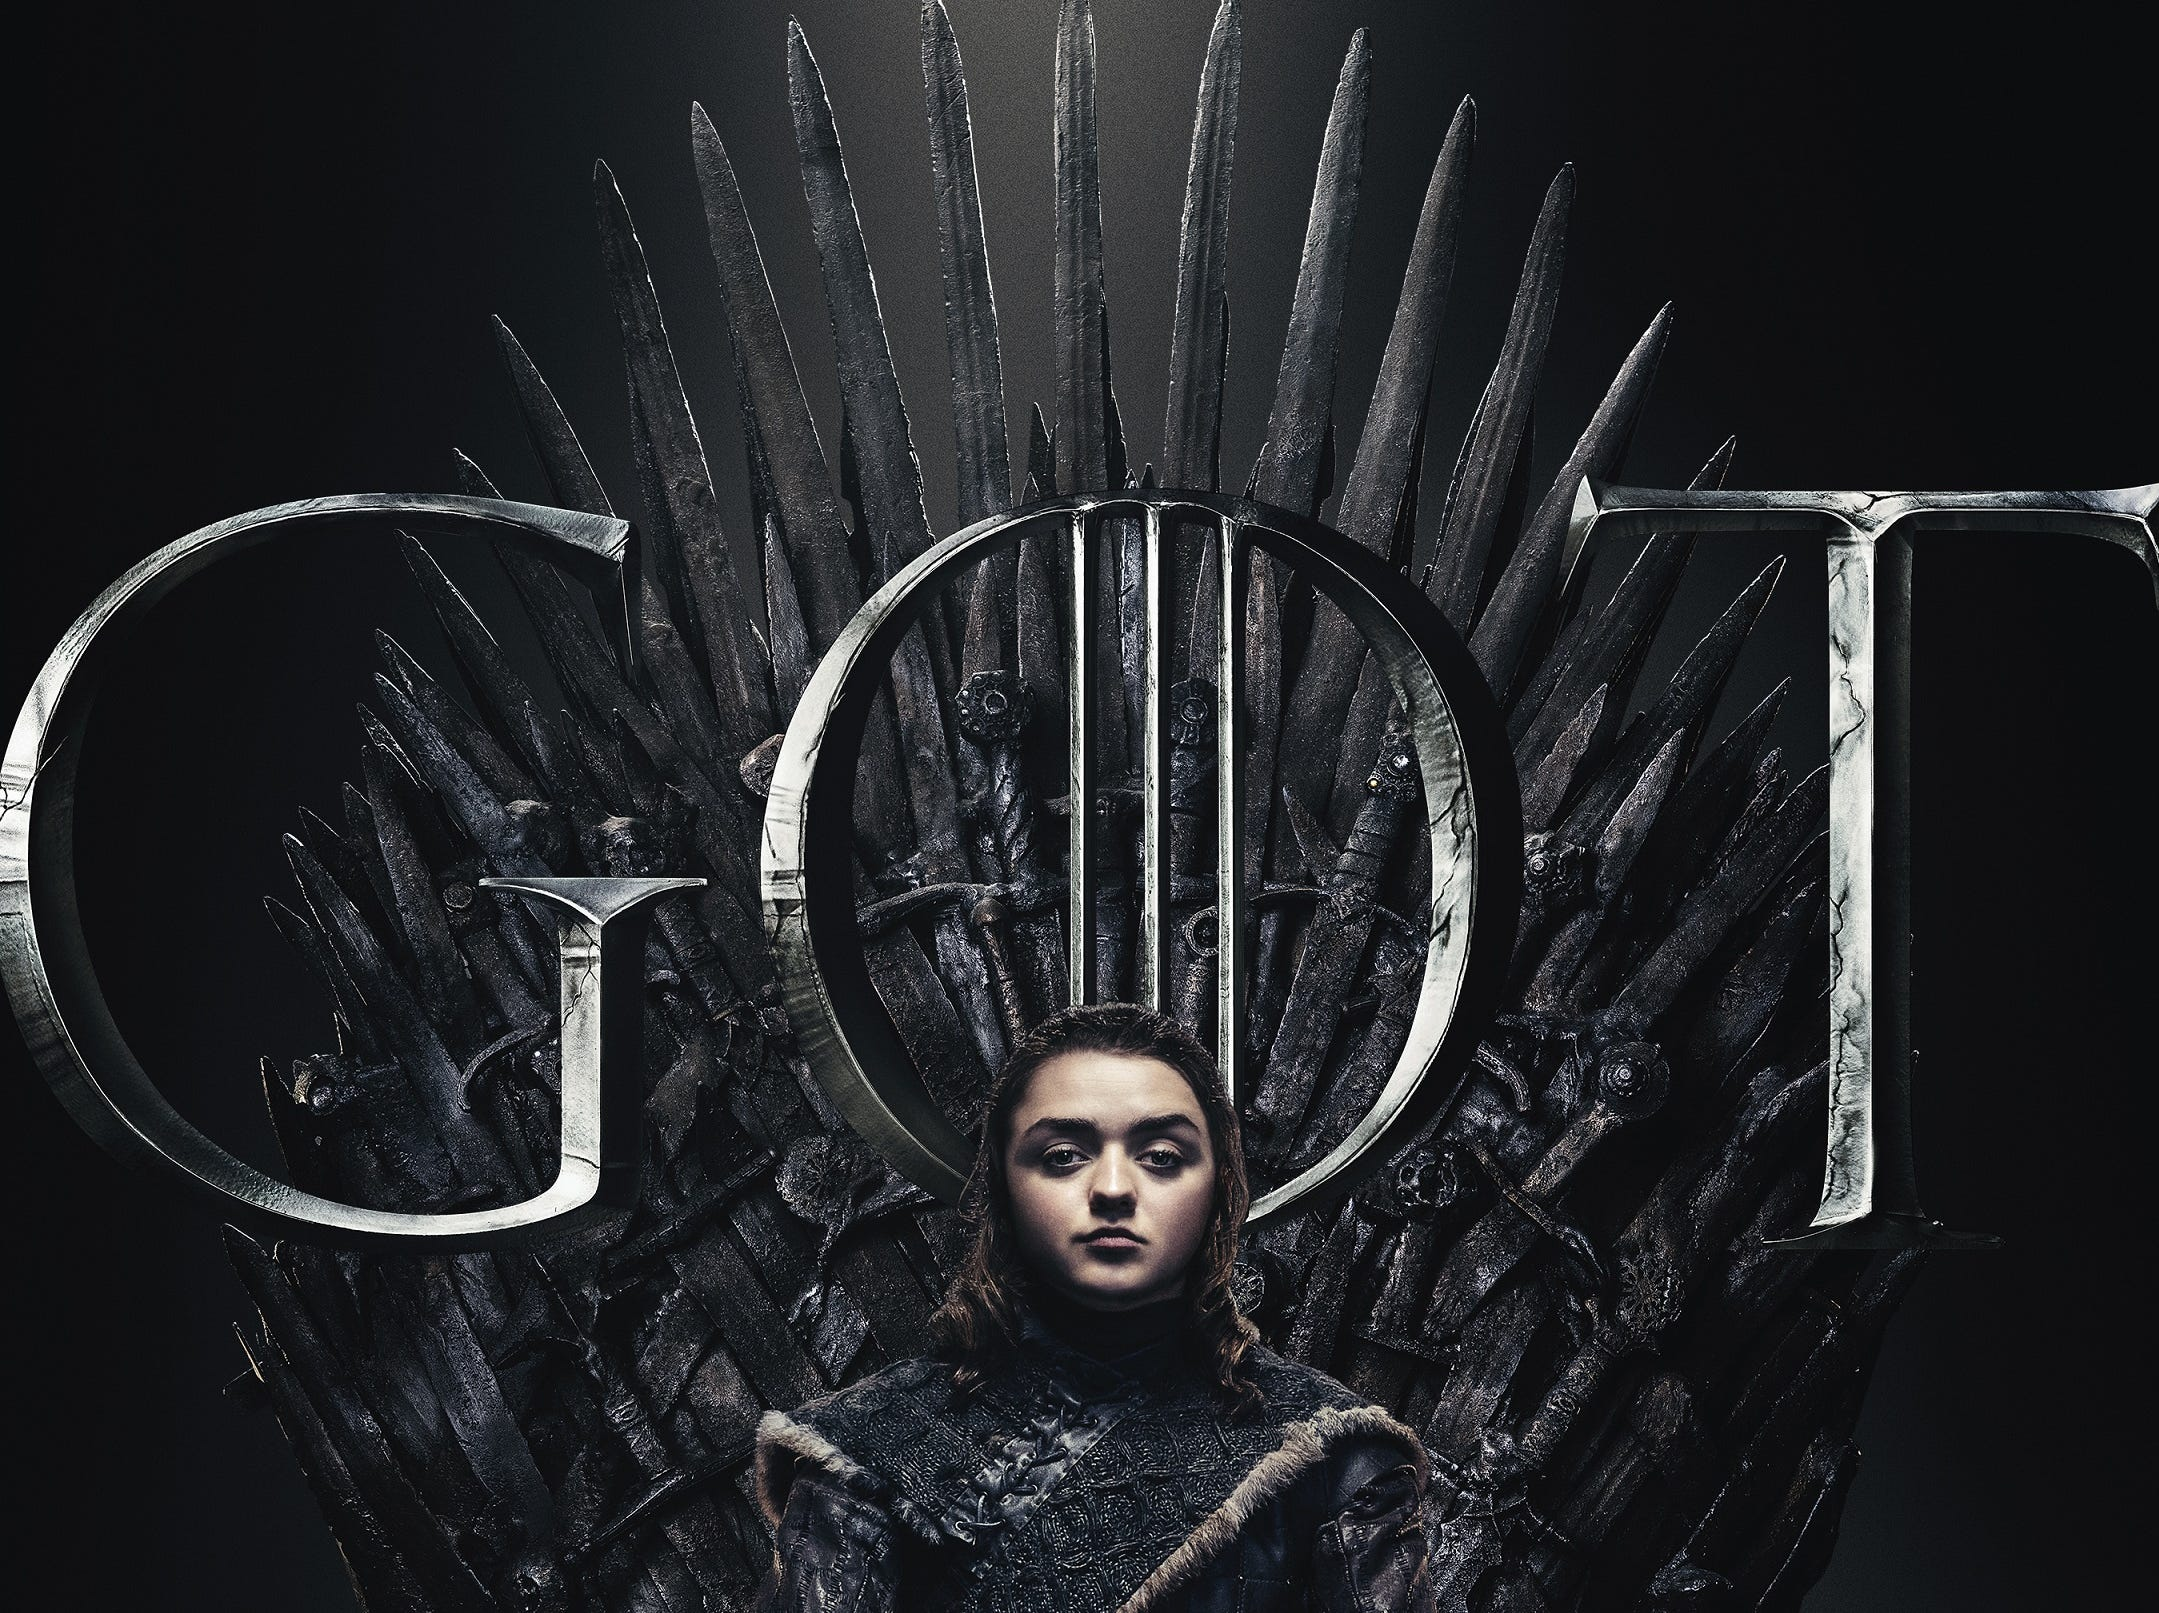 Serene, composed and clutching her faithful Needle, Arya Stark (Maisie Williams) looks ready for a fight.